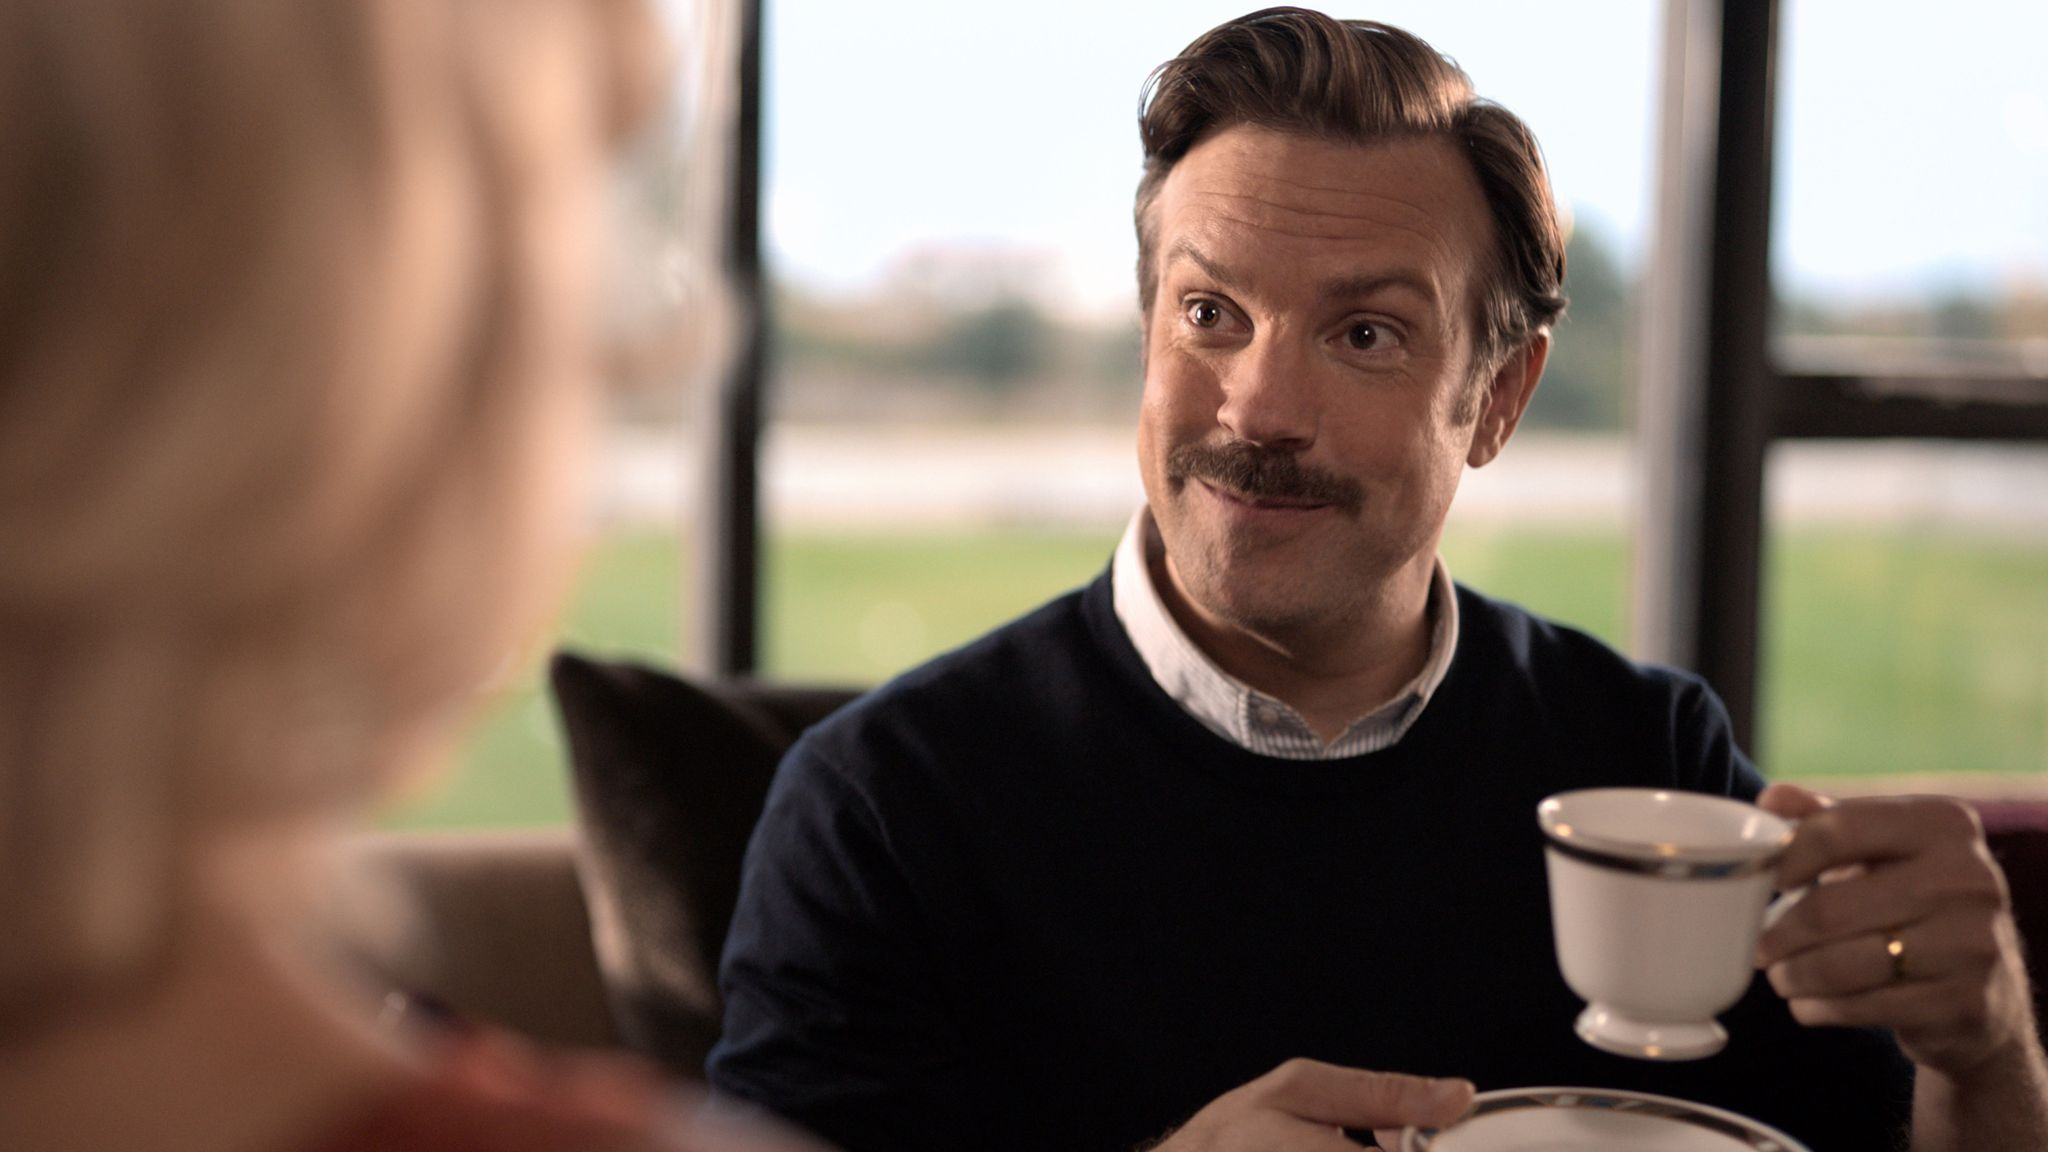 Jason Sudeikis in Ted Lasso. Pic: Apple +